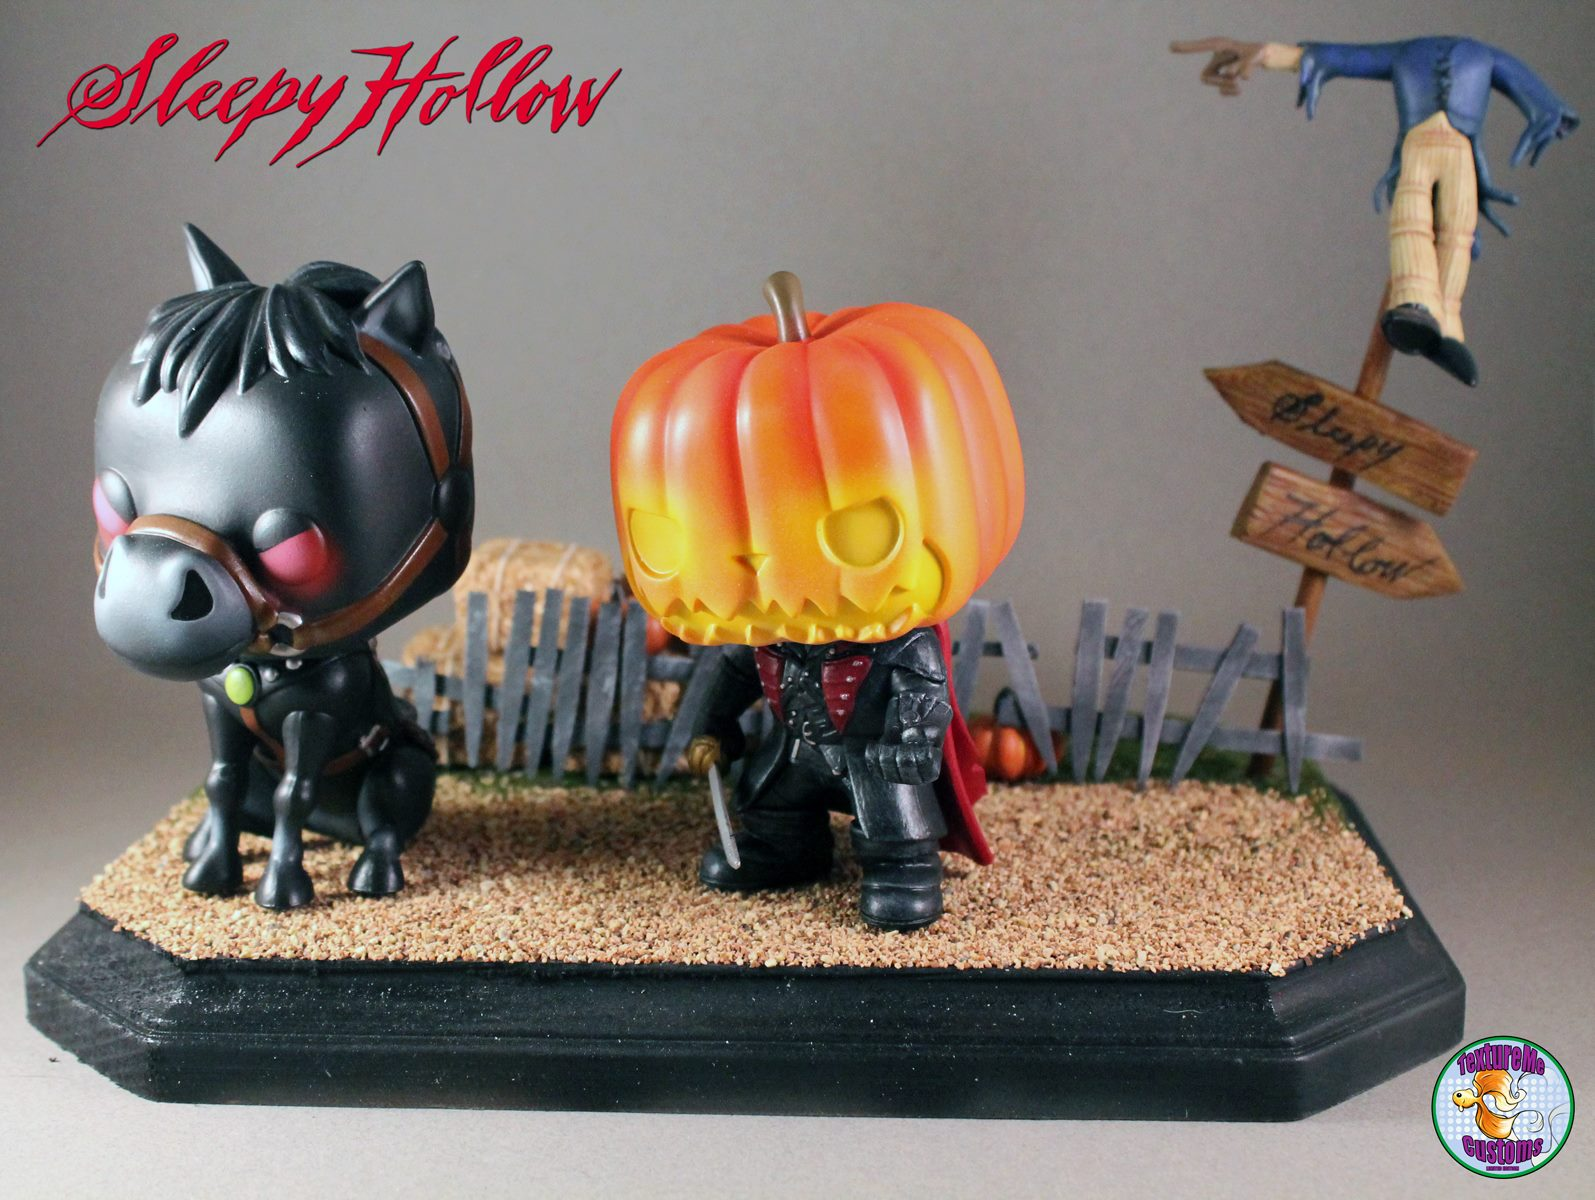 Custom Corner: The Headless Horseman